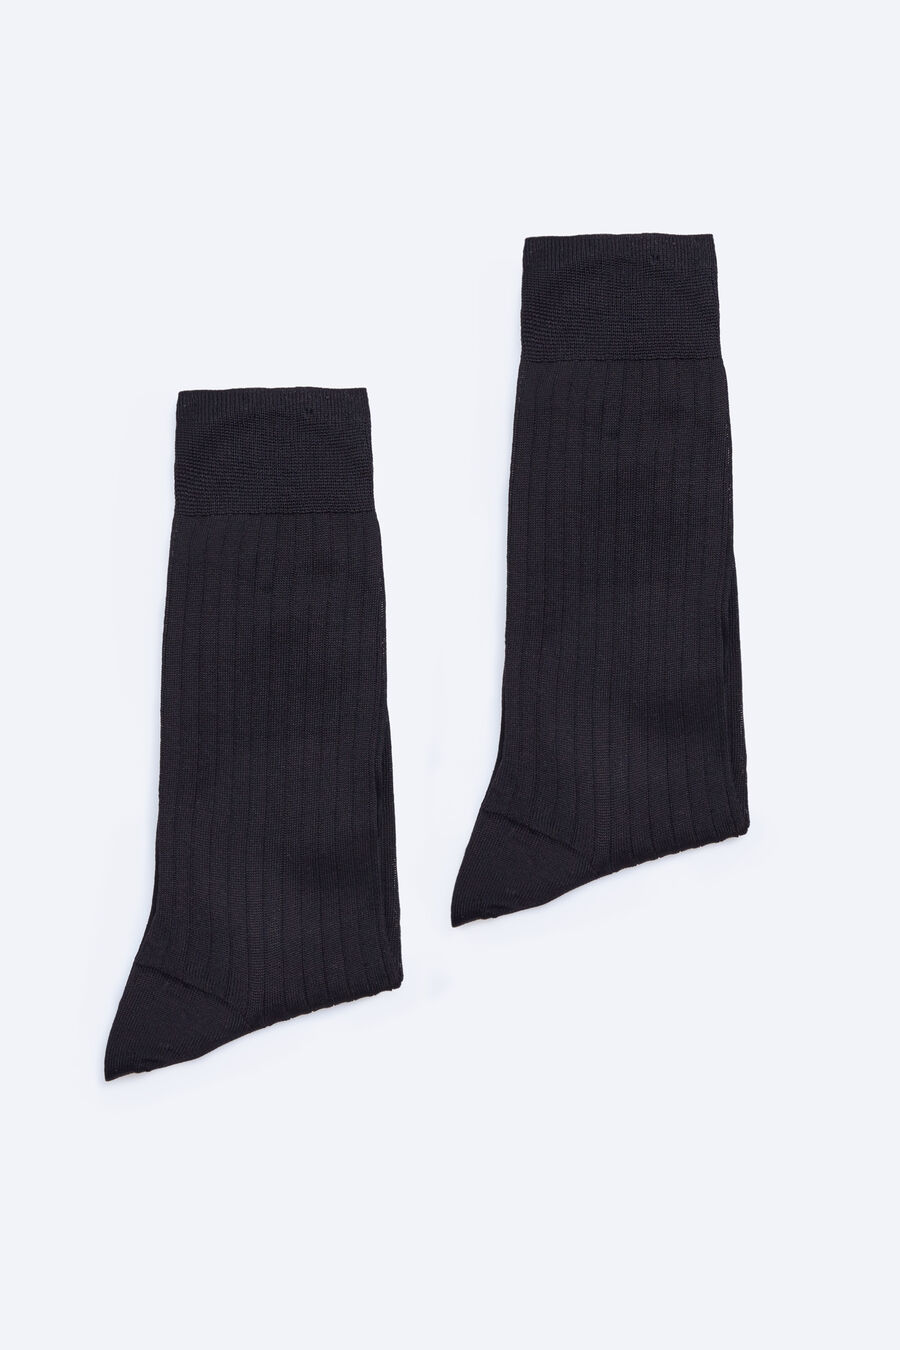 2 pack of tartan fabric socks